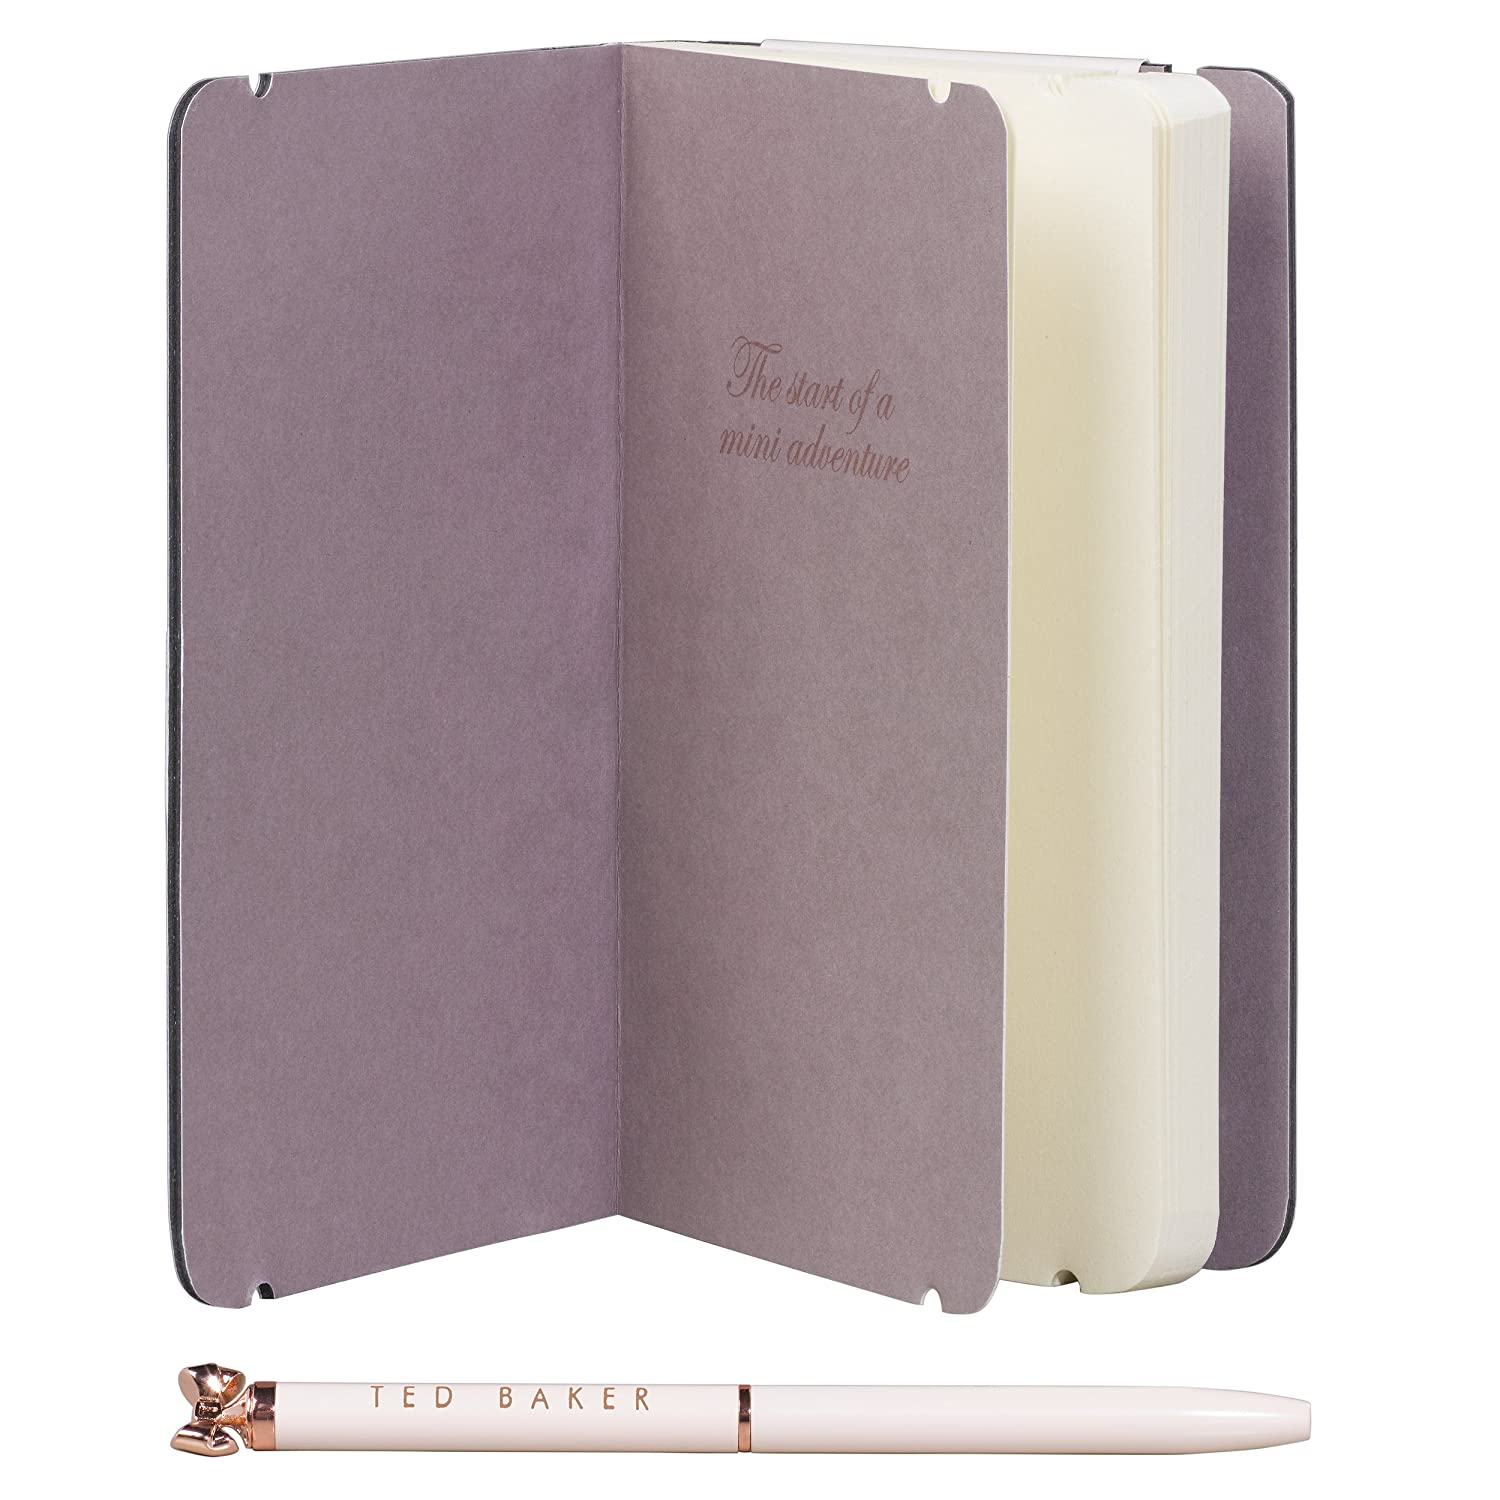 3879b089477c Ted Baker A5 Notebook with Sticky Notes